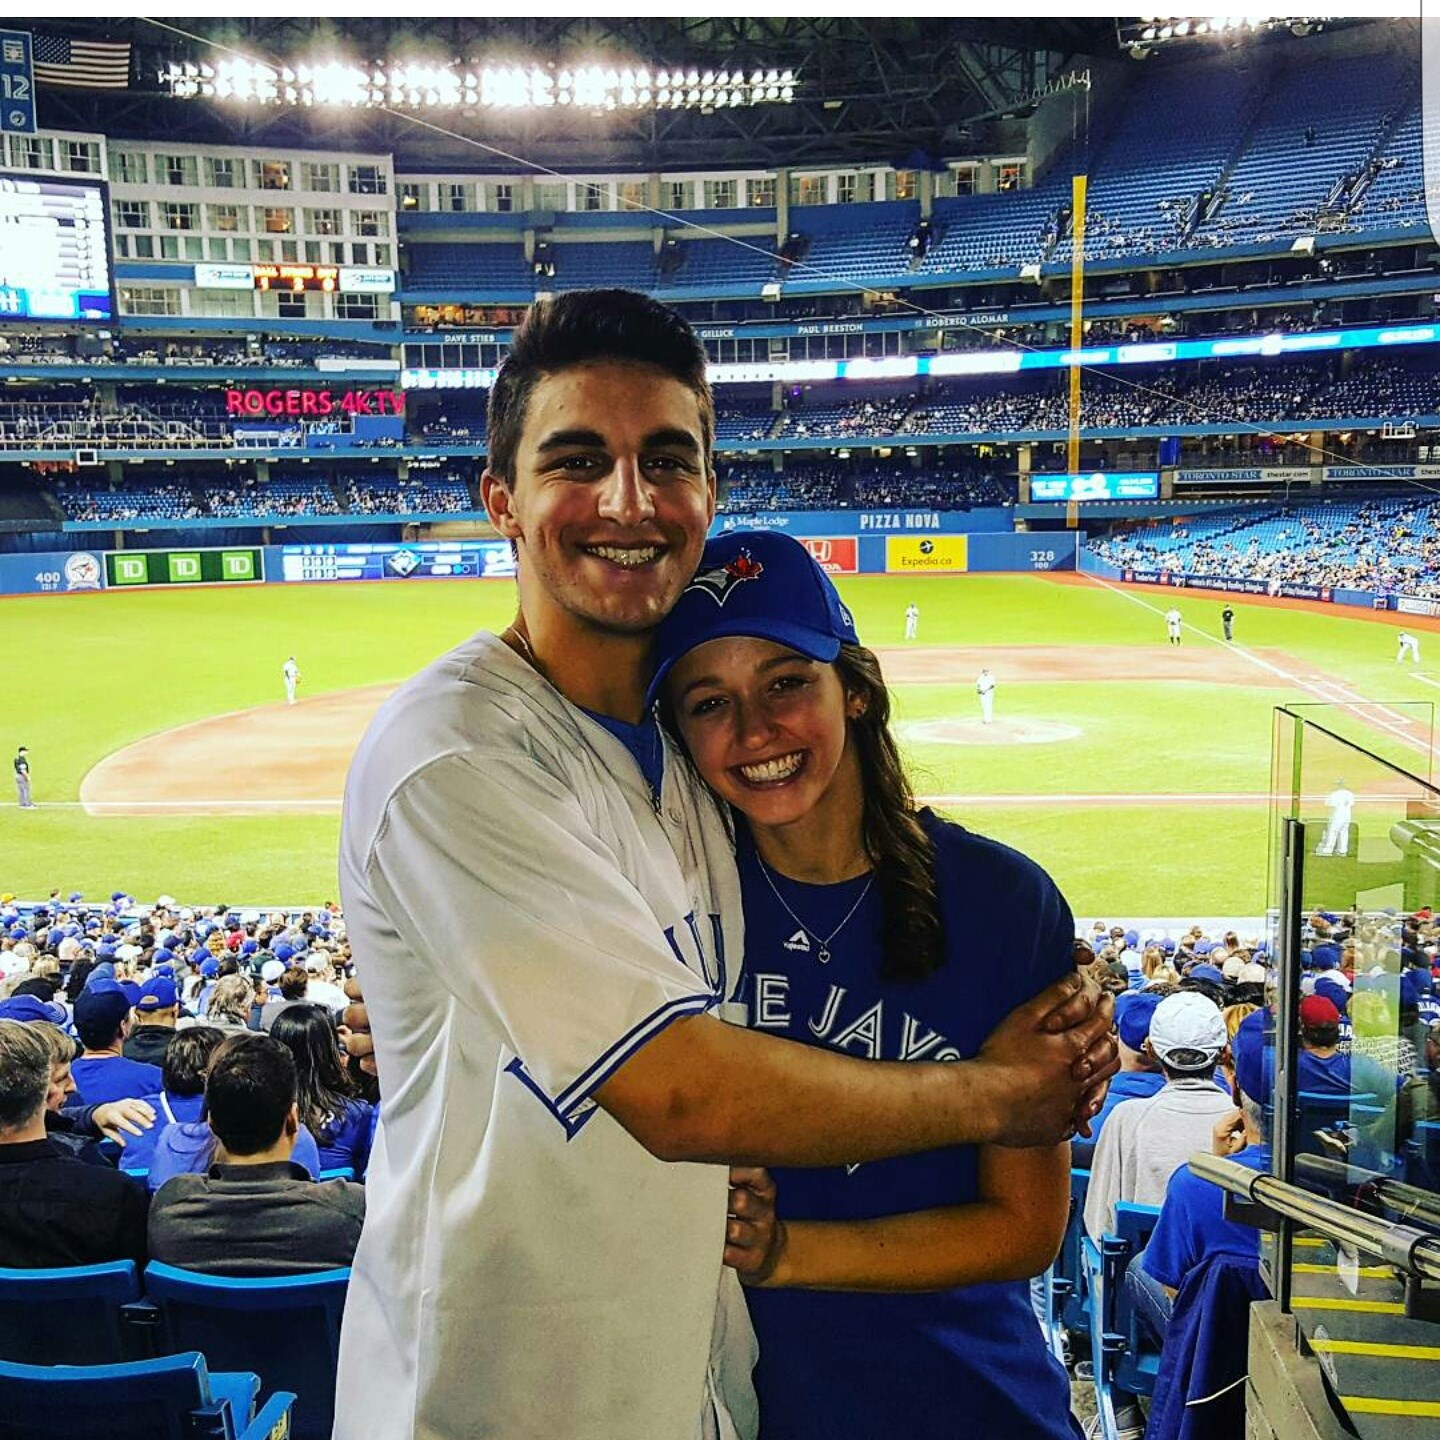 Best Jays game ever